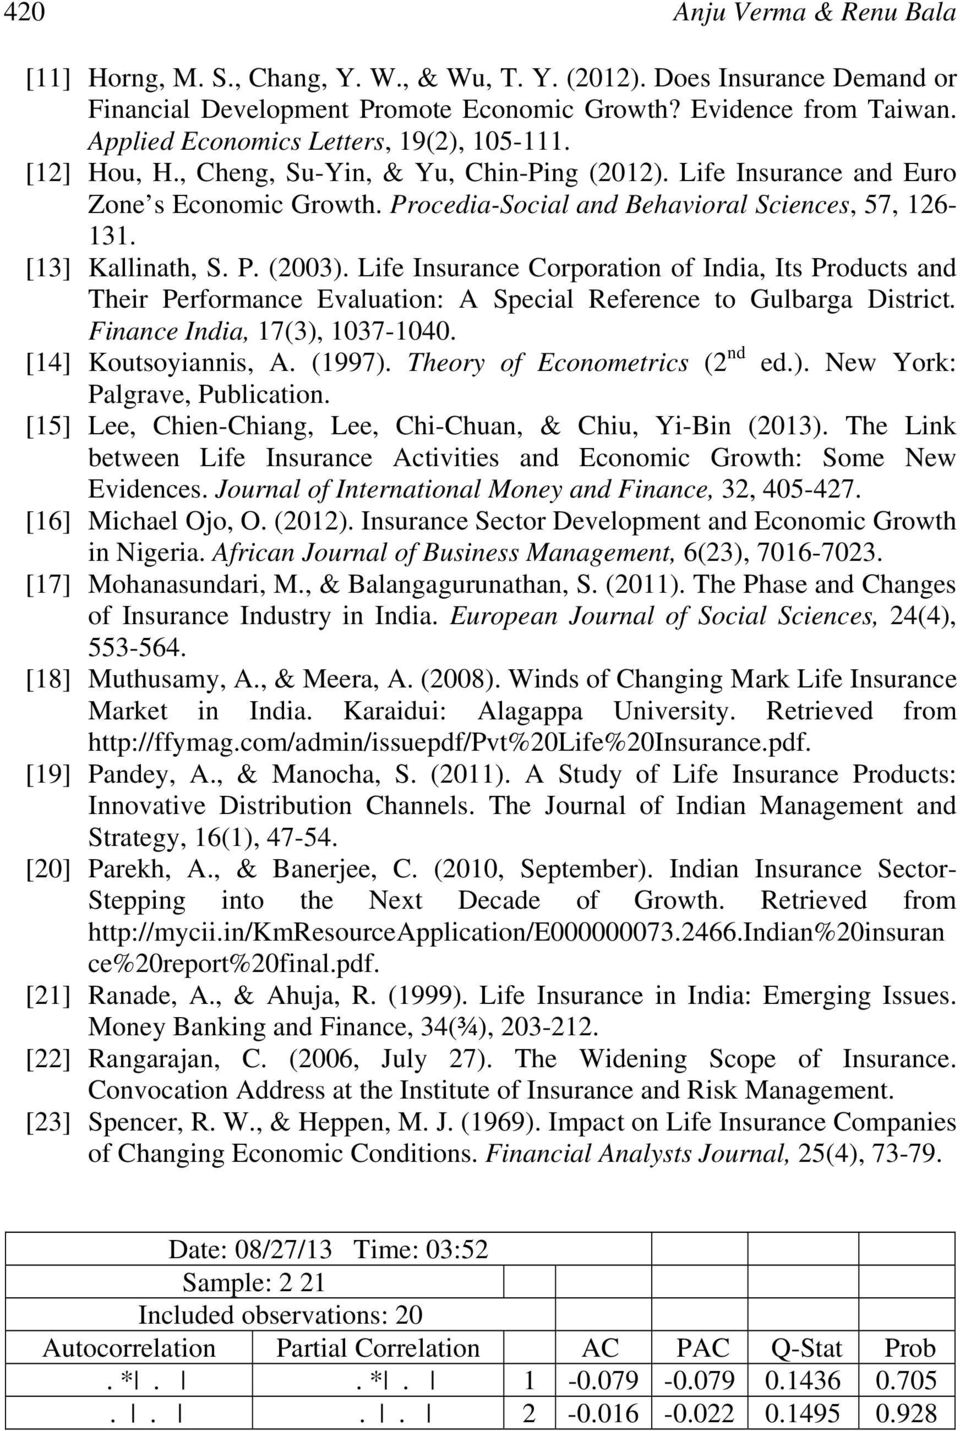 [13] Kallinath, S. P. (2003). Life Insurance Corporation of India, Its Products and Their Performance Evaluation: A Special Reference to Gulbarga District. Finance India, 17(3), 1037-1040.